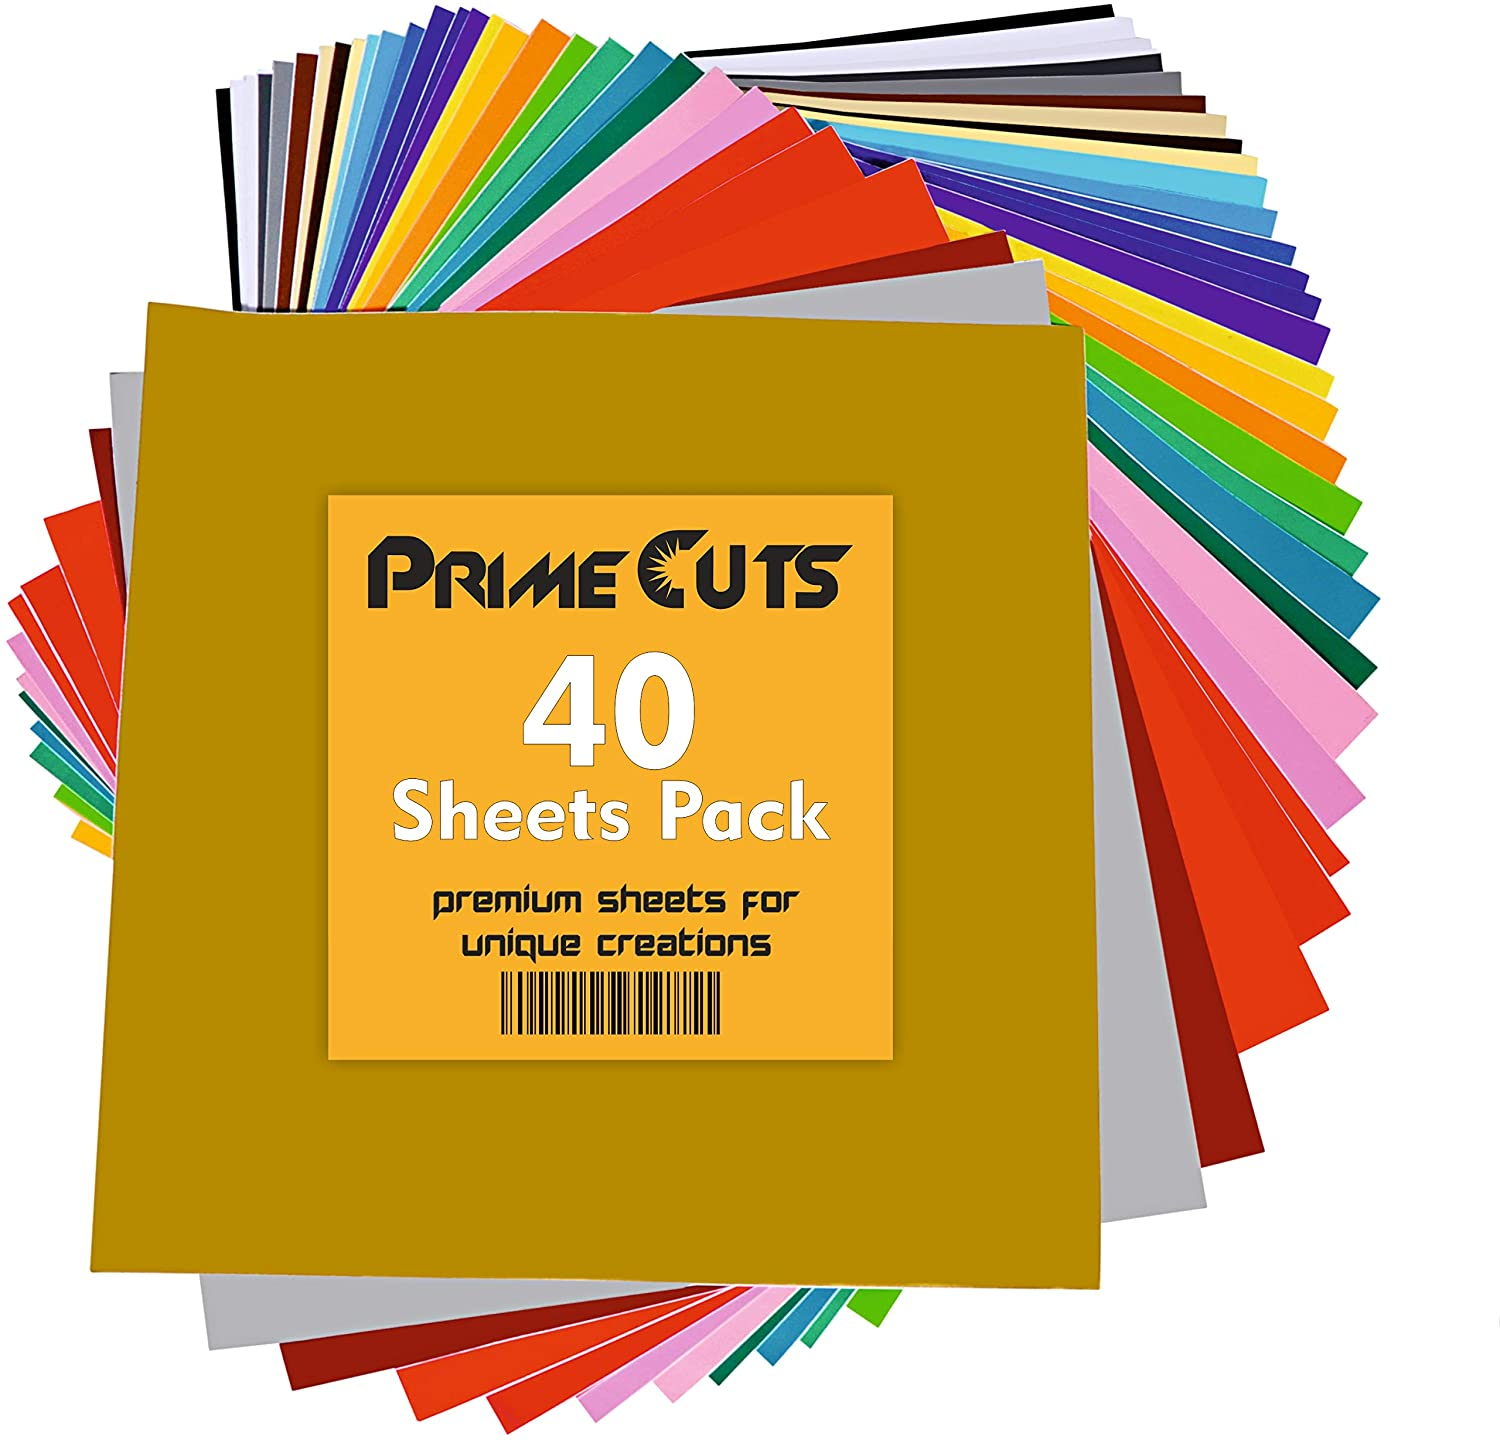 Permanent Adhesive Backed Vinyl 40 Sheets - PrimeCuts USA - 40 Sheets 12 x 12 - 40 Assorted Color Sheets for Cricut, Silhouette Cameo, and Other Craft Cutters Boreen